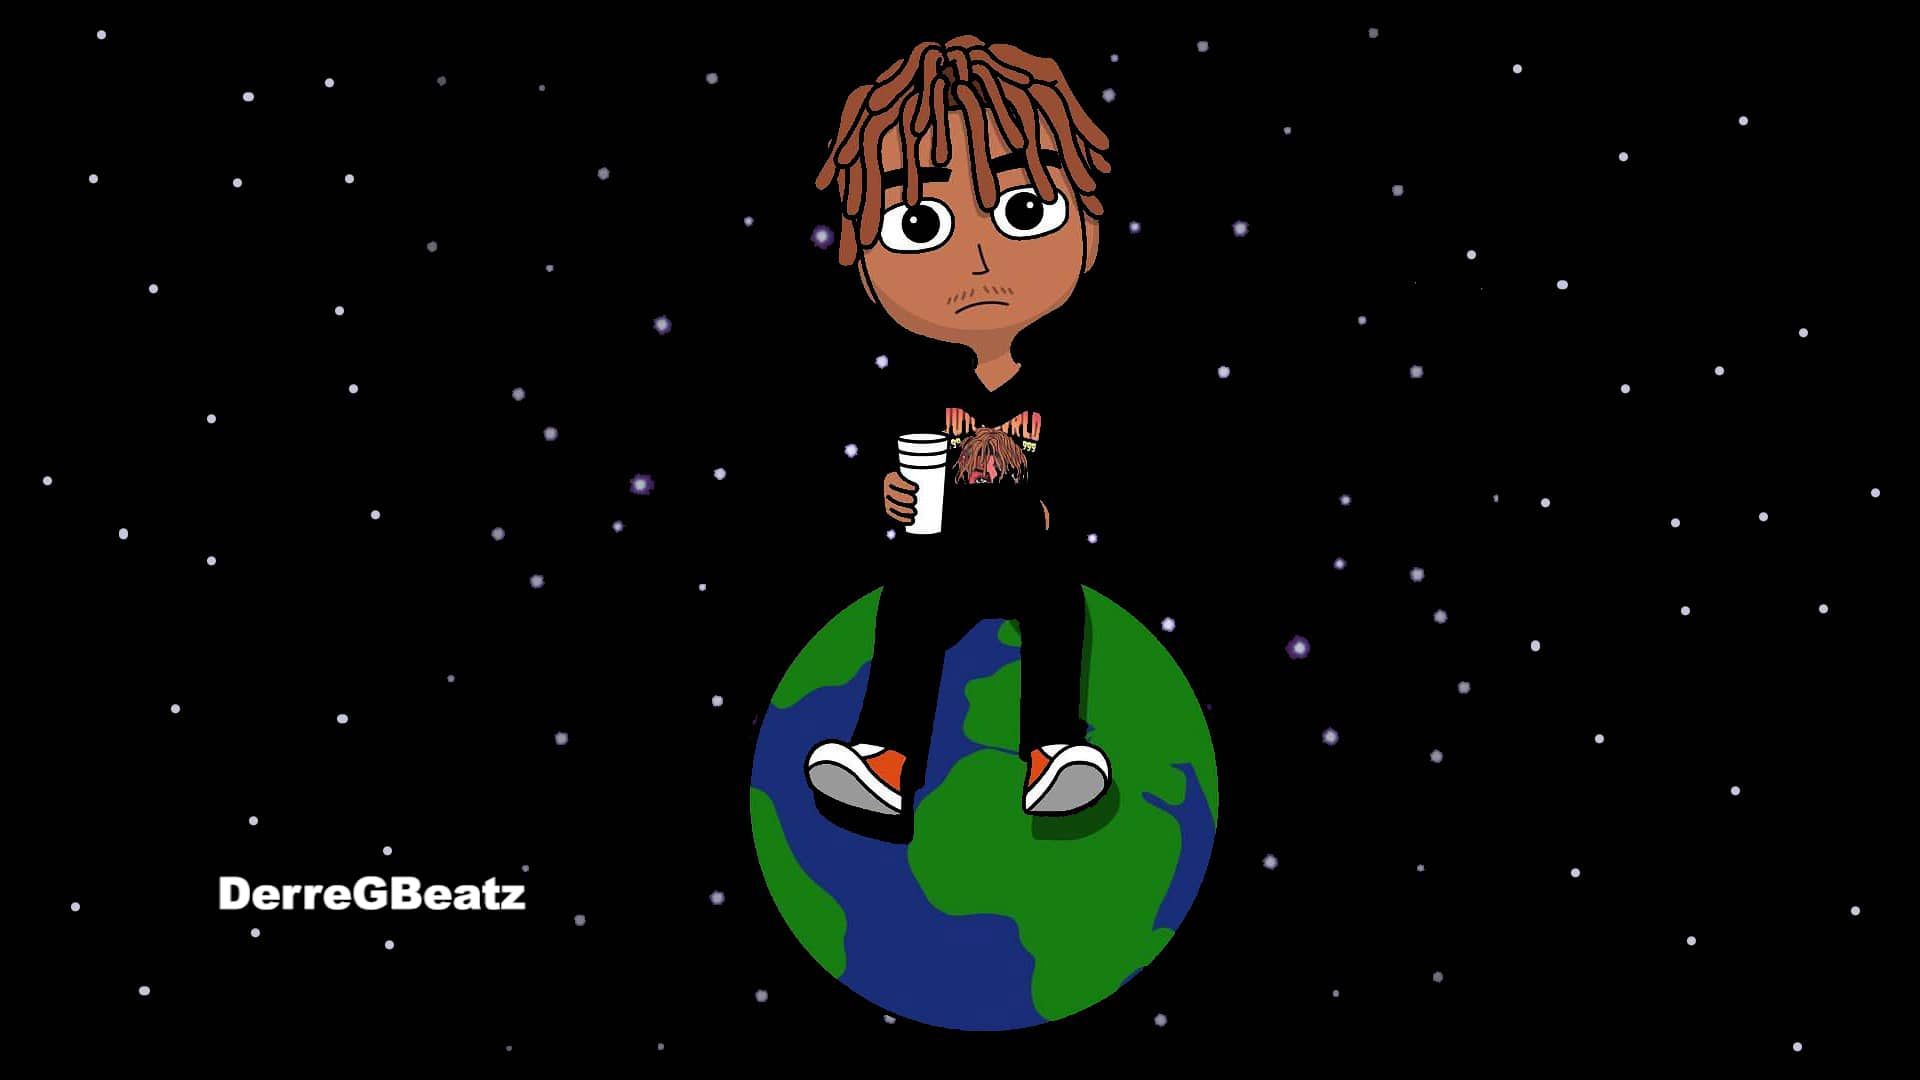 50 Juice Wrld Wallpapers Download At Wallpaperbro Cartoon Wallpaper Anime Wallpaper Animated Desktop Backgrounds